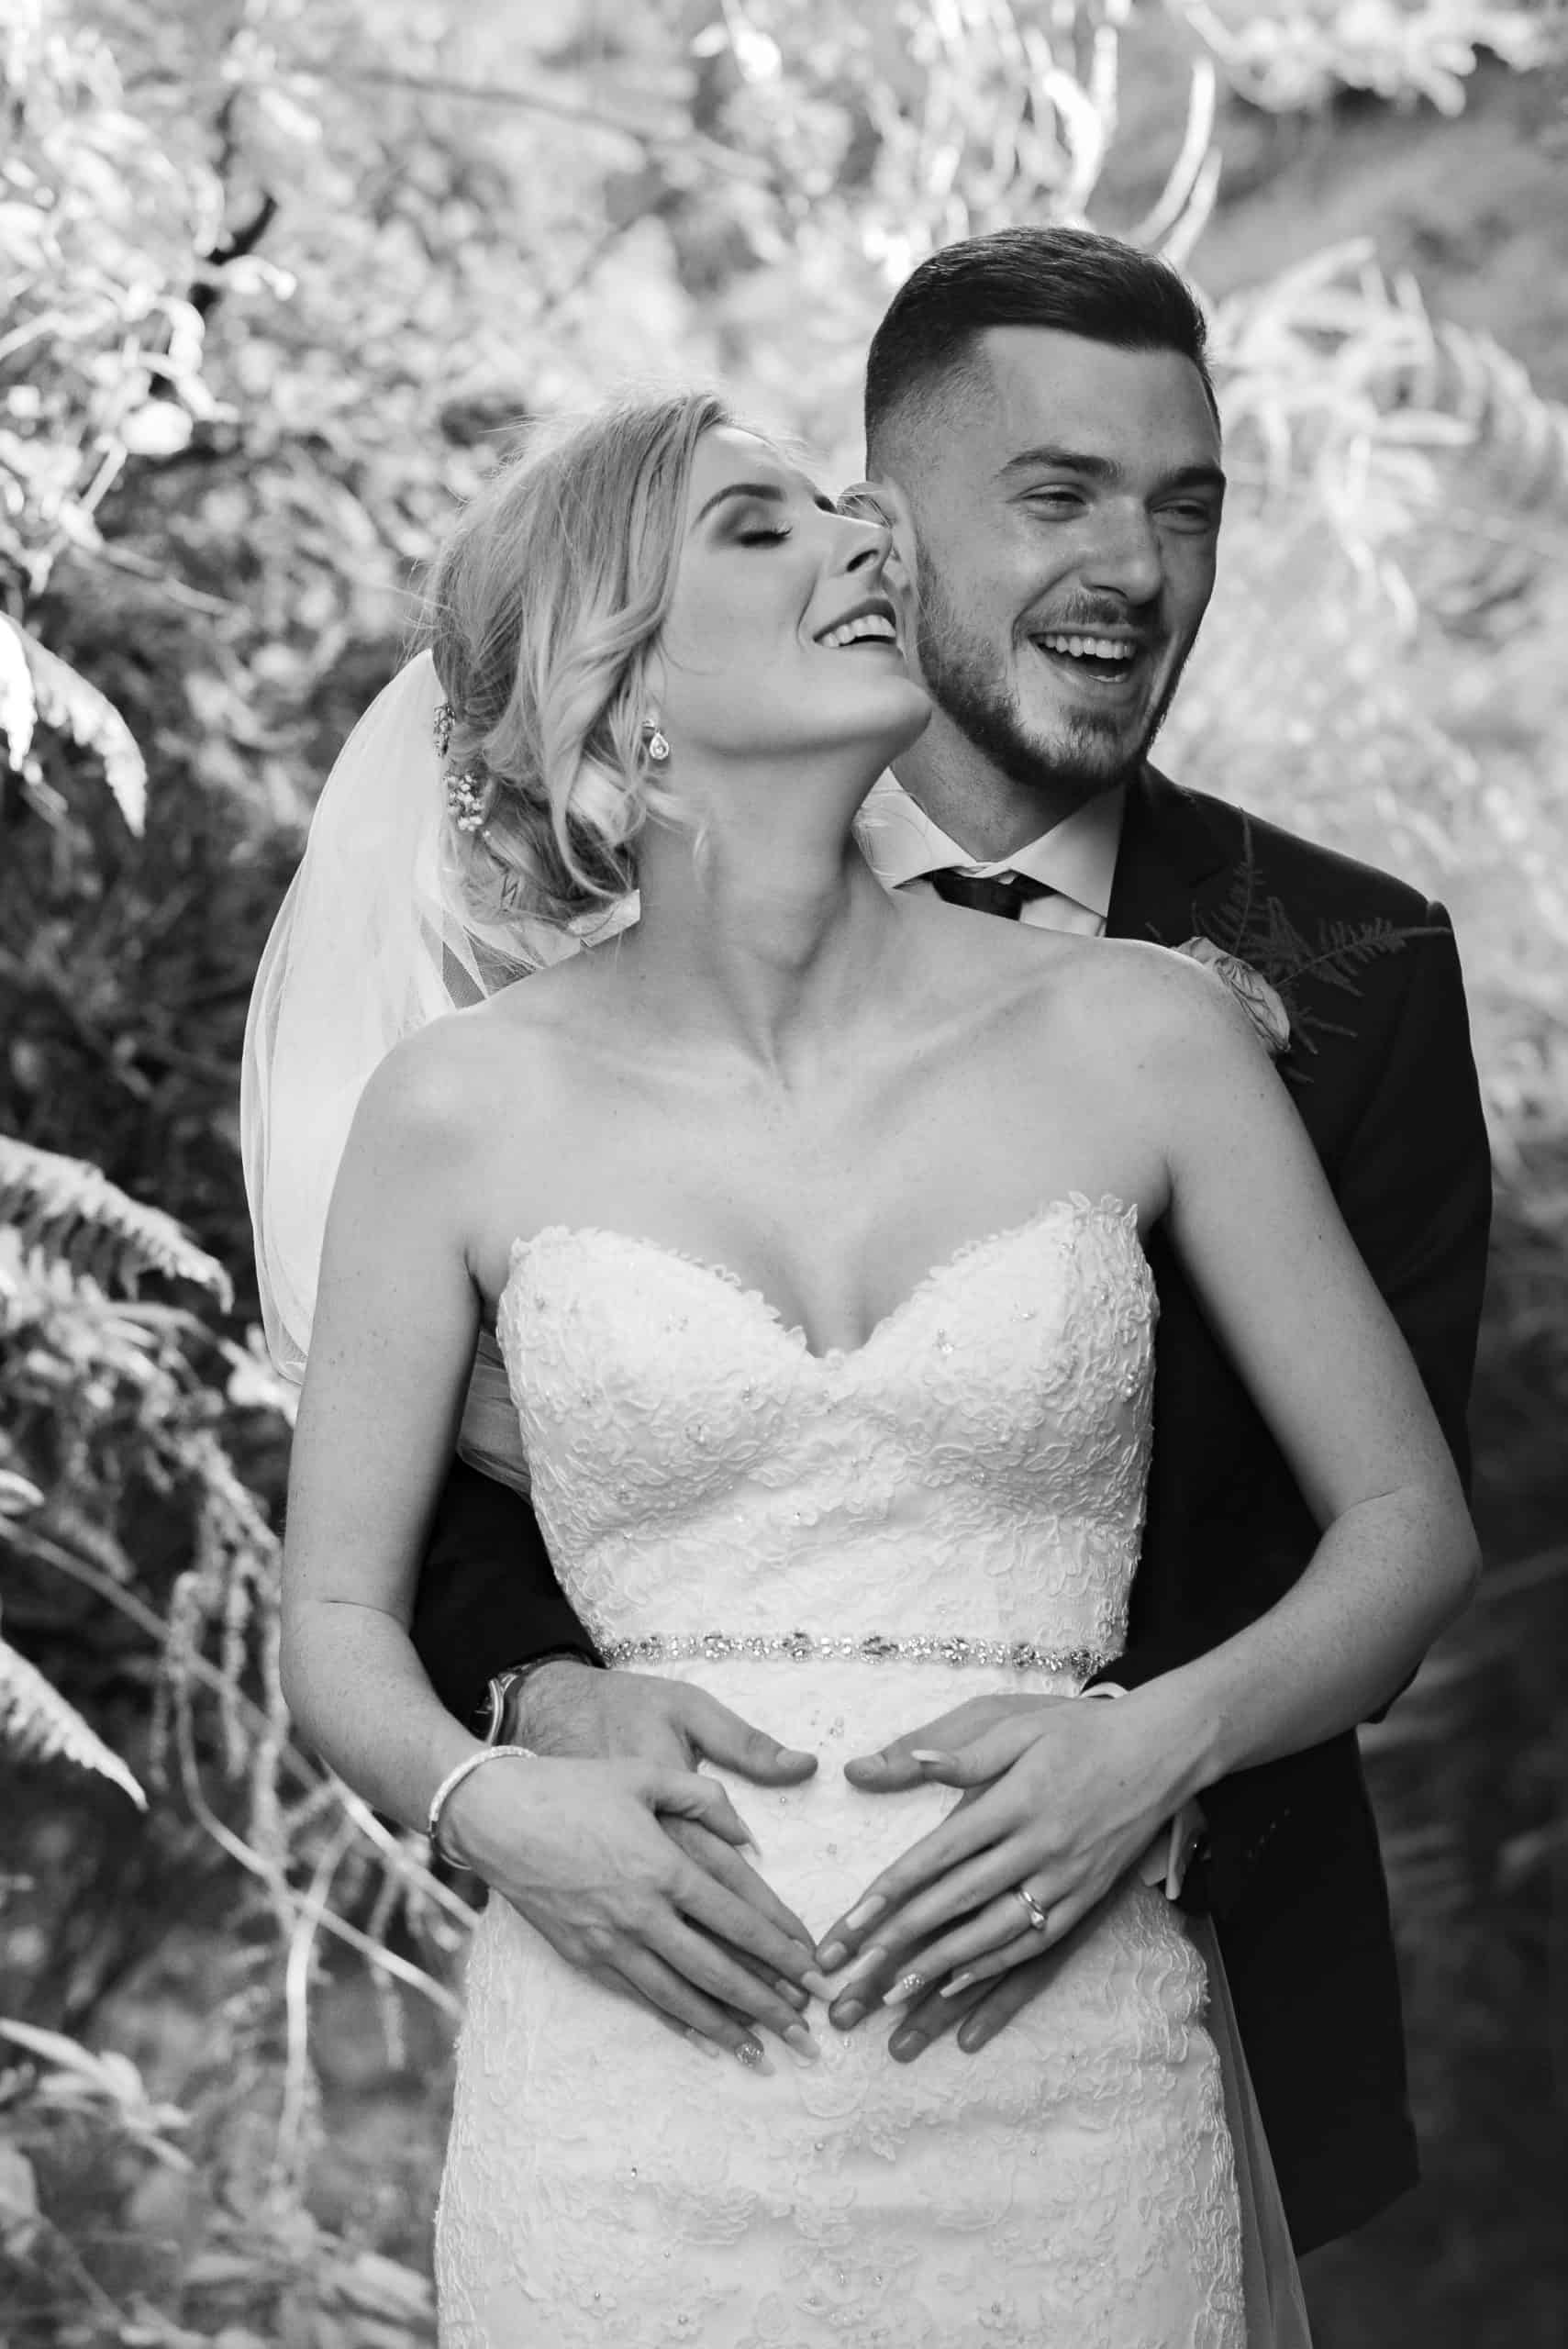 Bride and groom arm in arm having fun. black and white photo